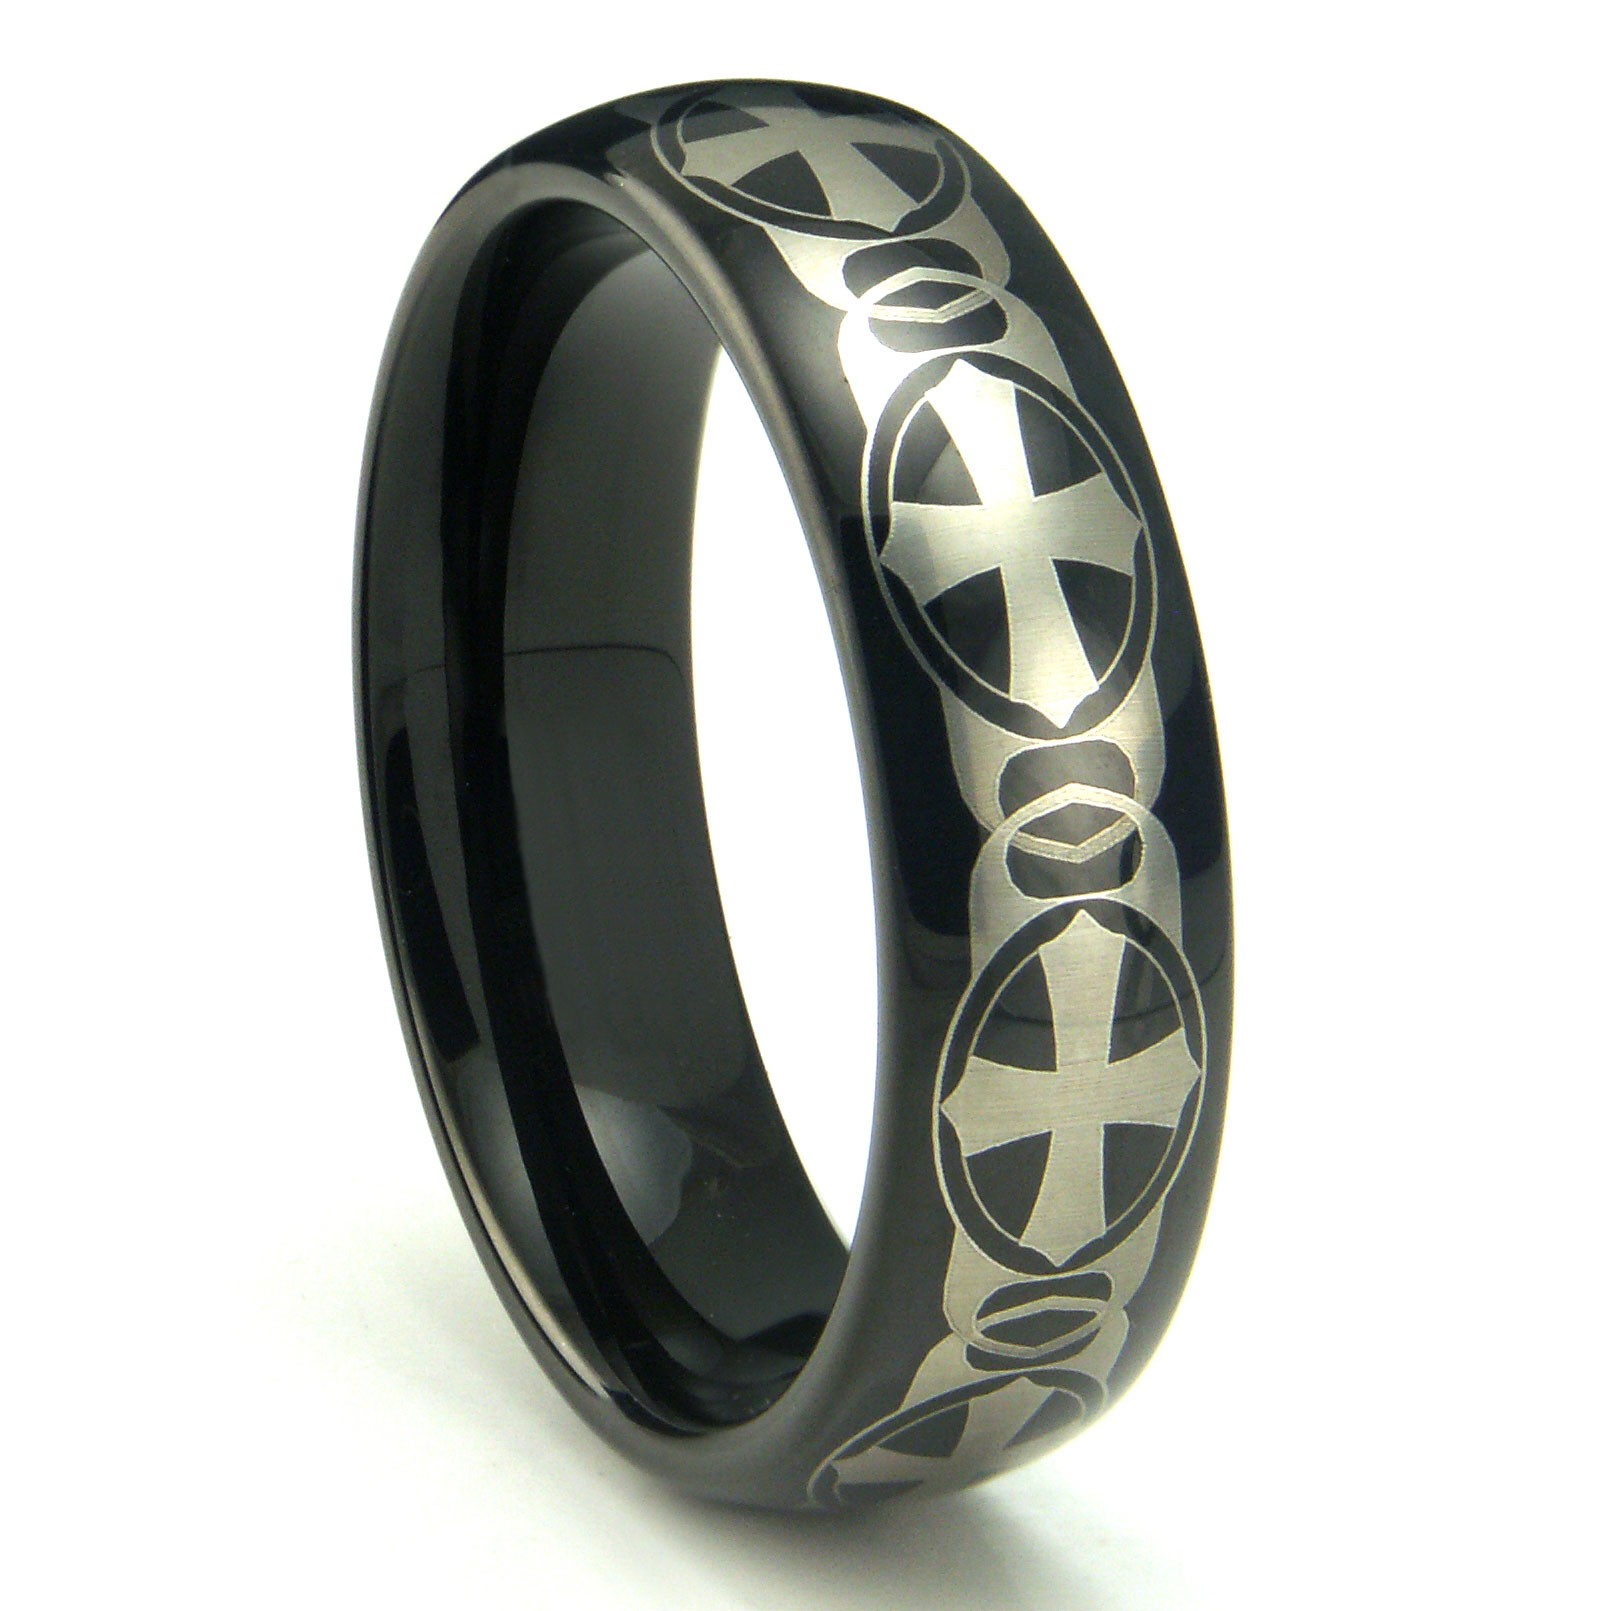 Tungsten Carbide Mens Wedding Band Ring With Cross Design